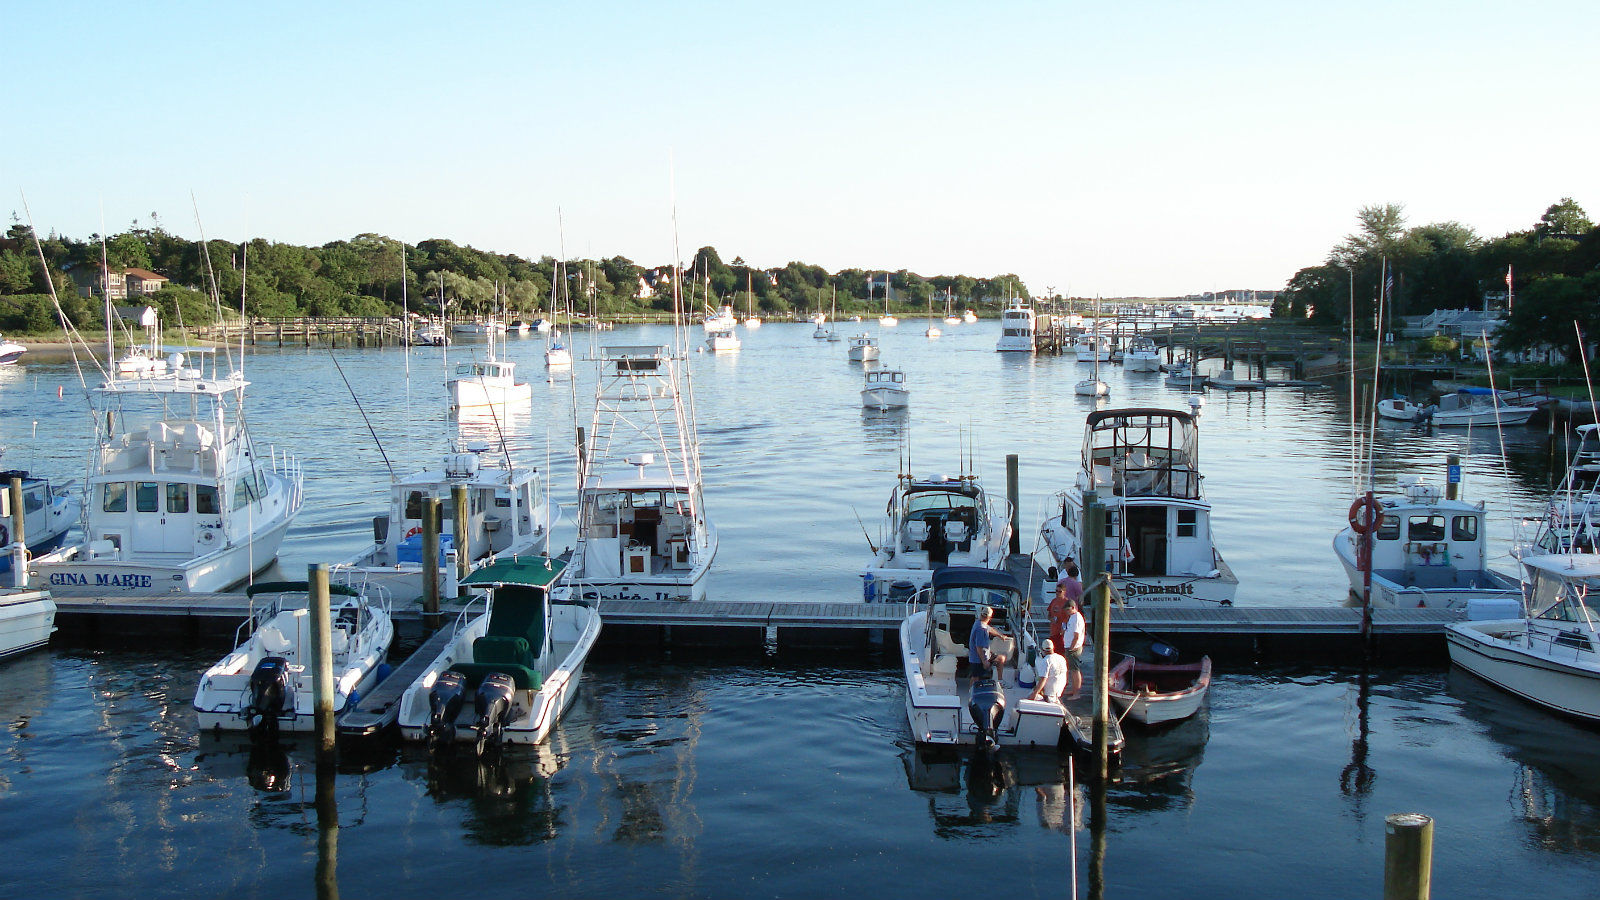 Things To Do in Provincetown - Boats